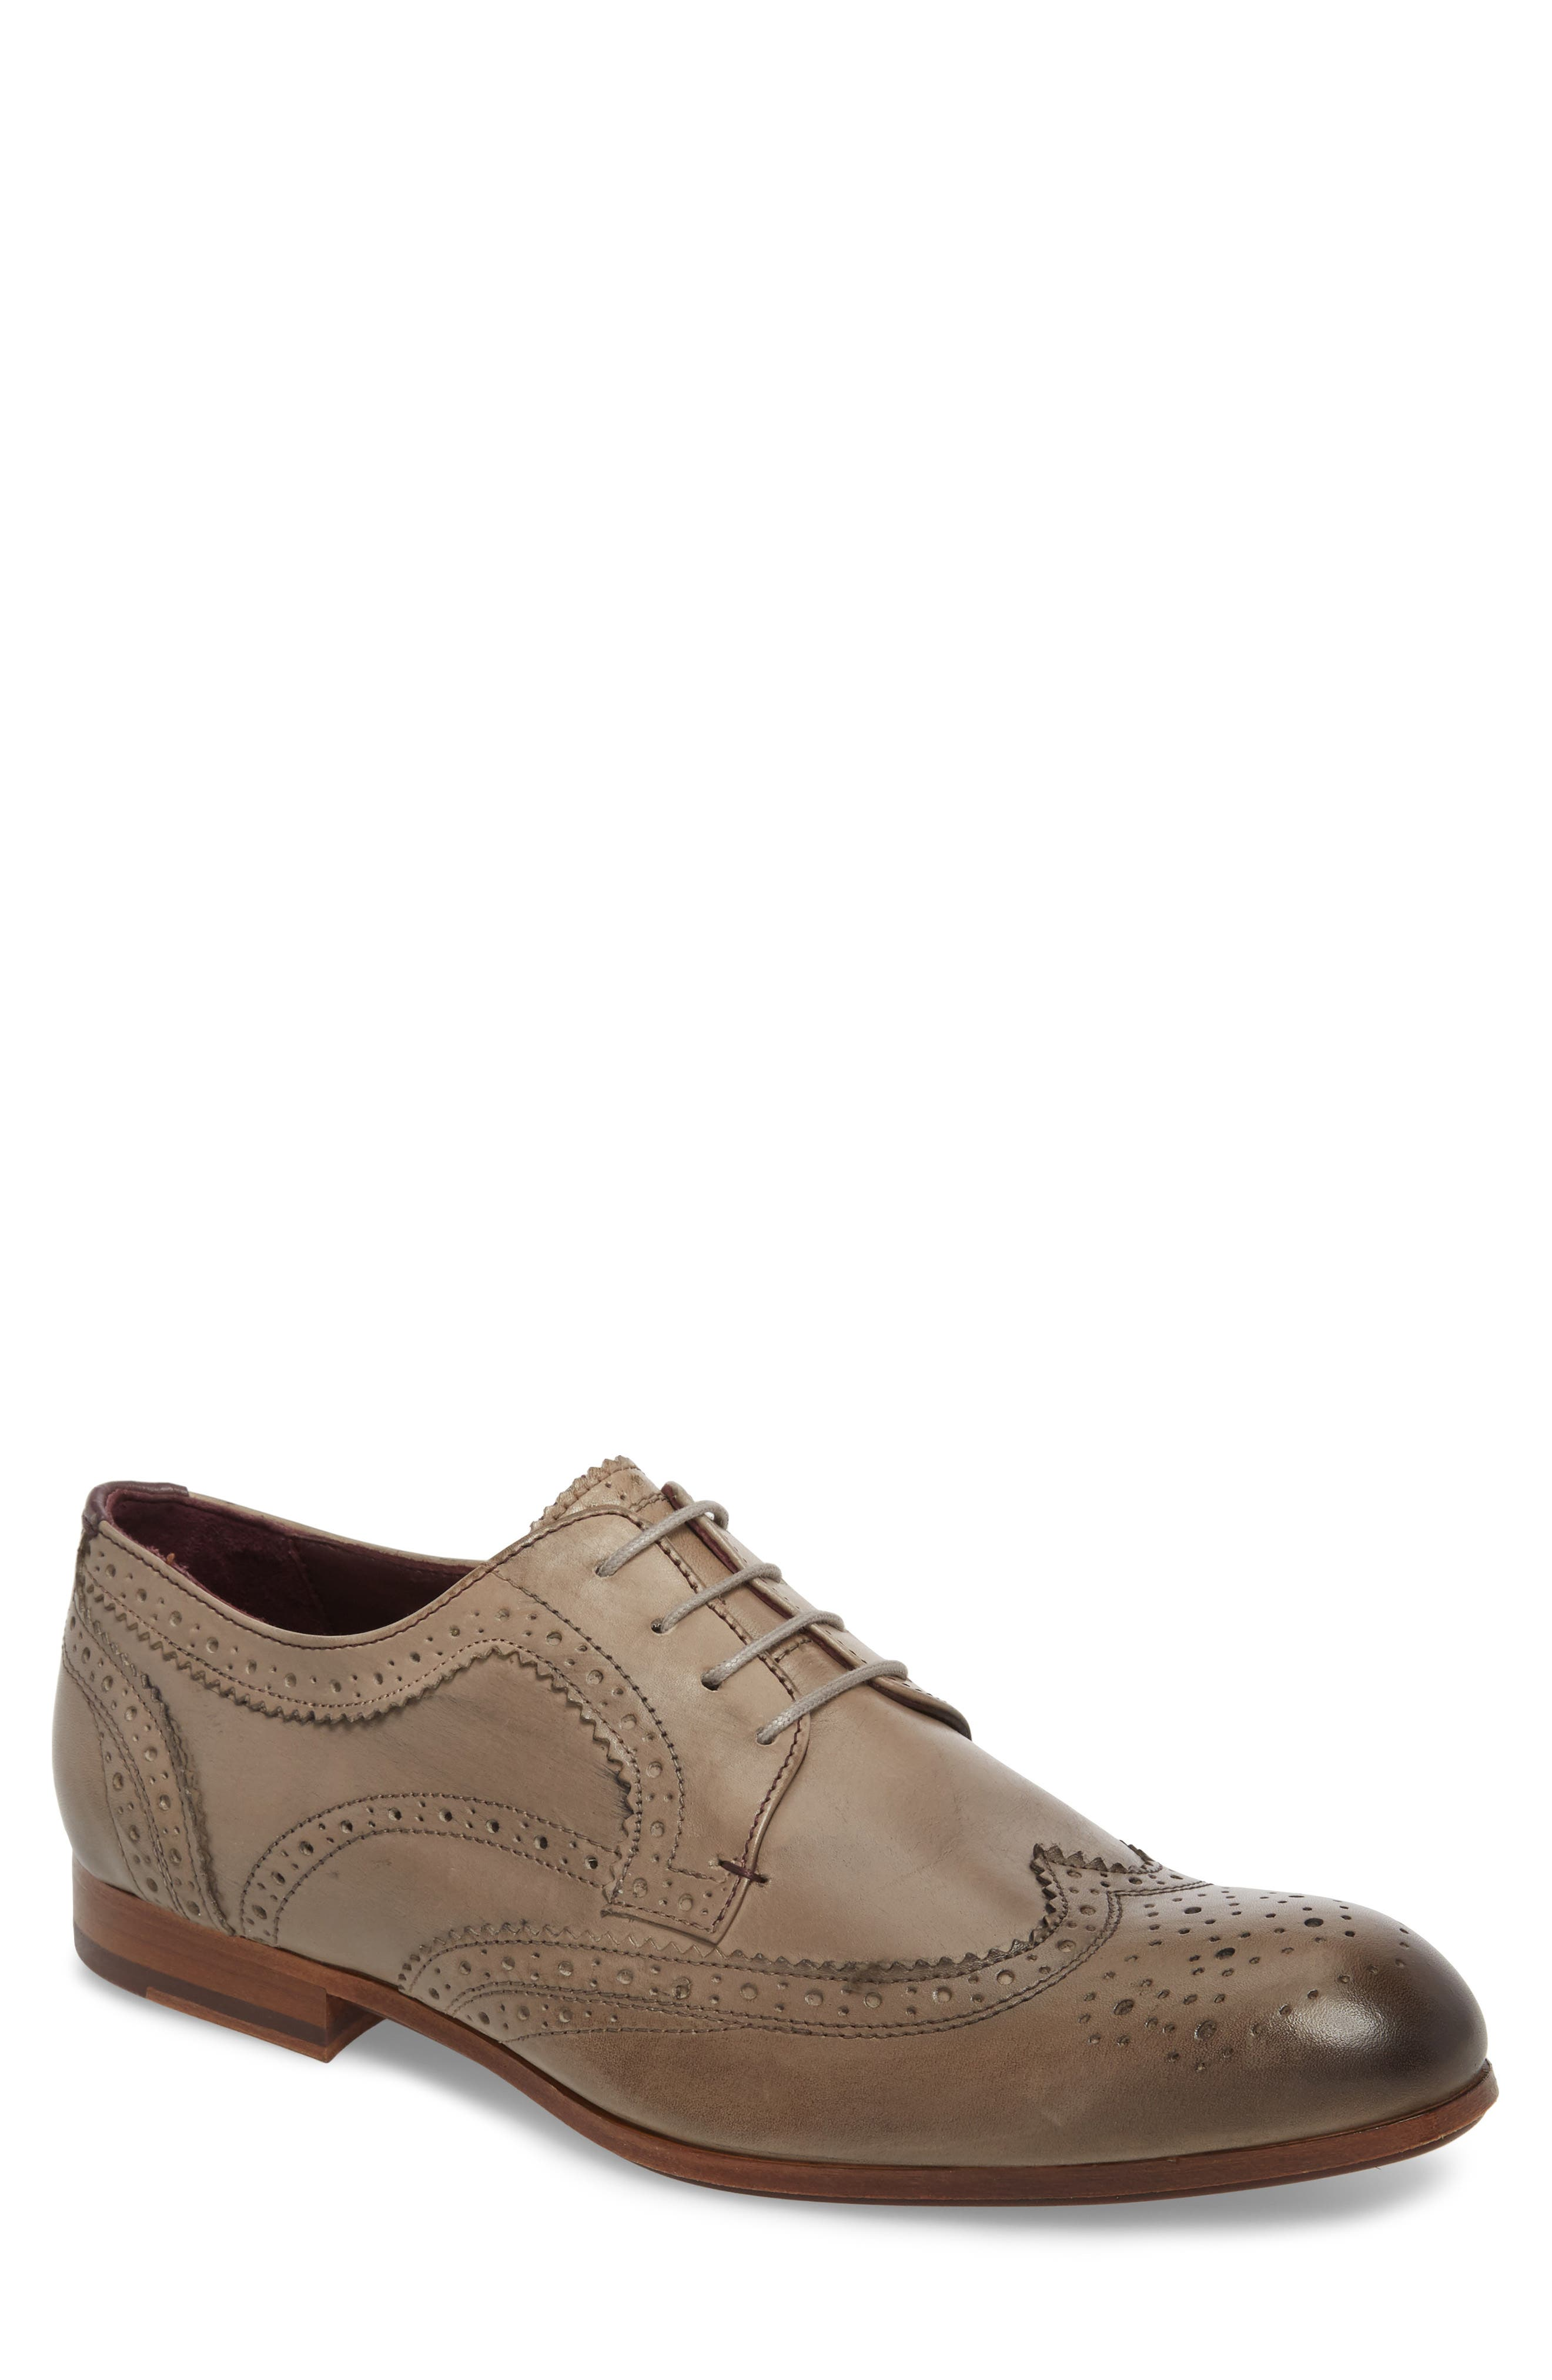 Granet Wingtip,                             Main thumbnail 1, color,                             Grey Leather